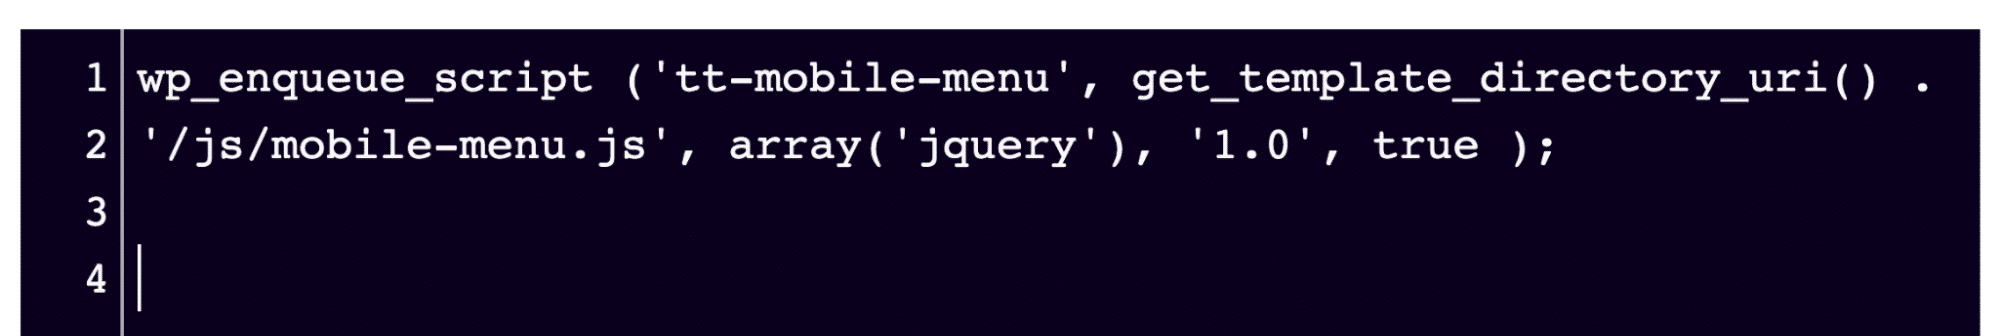 Snippet can be pasted into any FTP editor, so long as it's in the script-loader.php file.